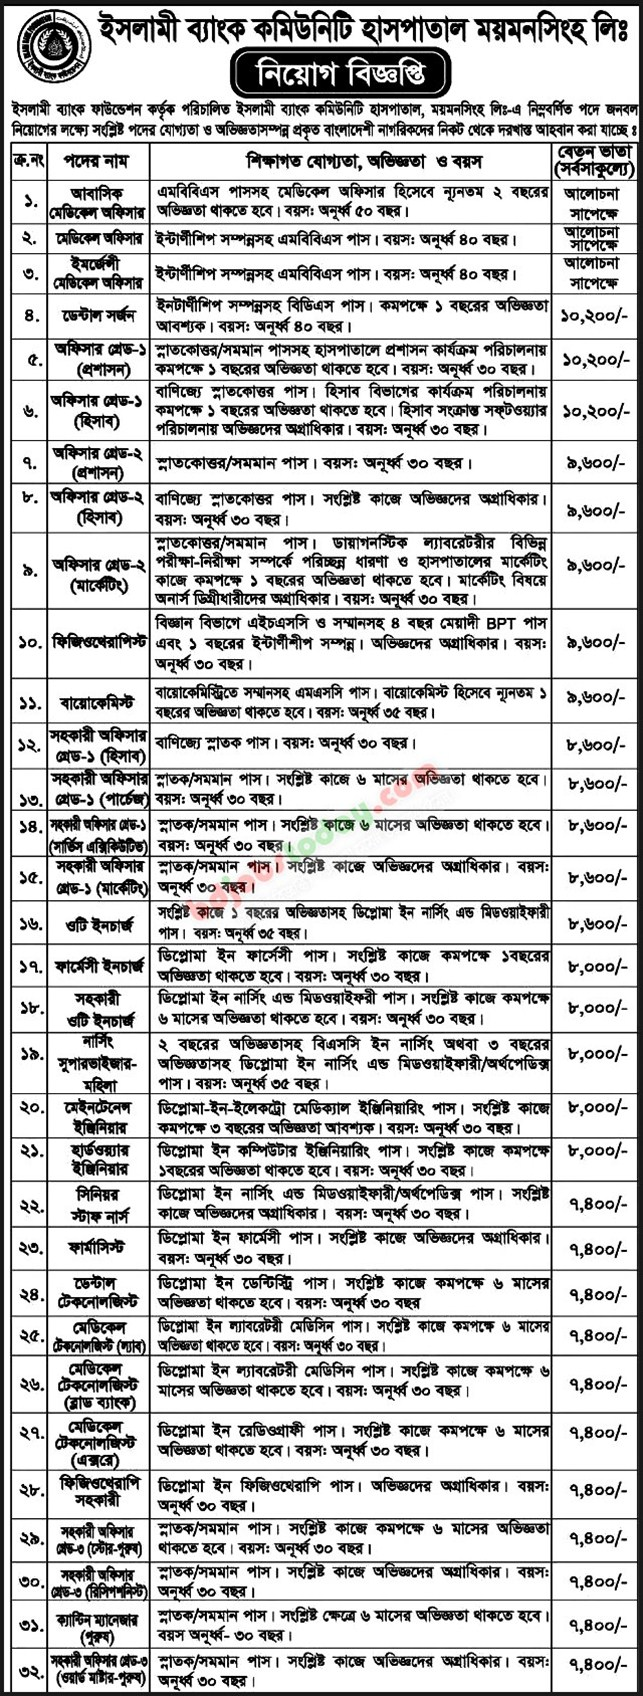 Islami Bank Community Hospital Mymensingh Ltd jobs